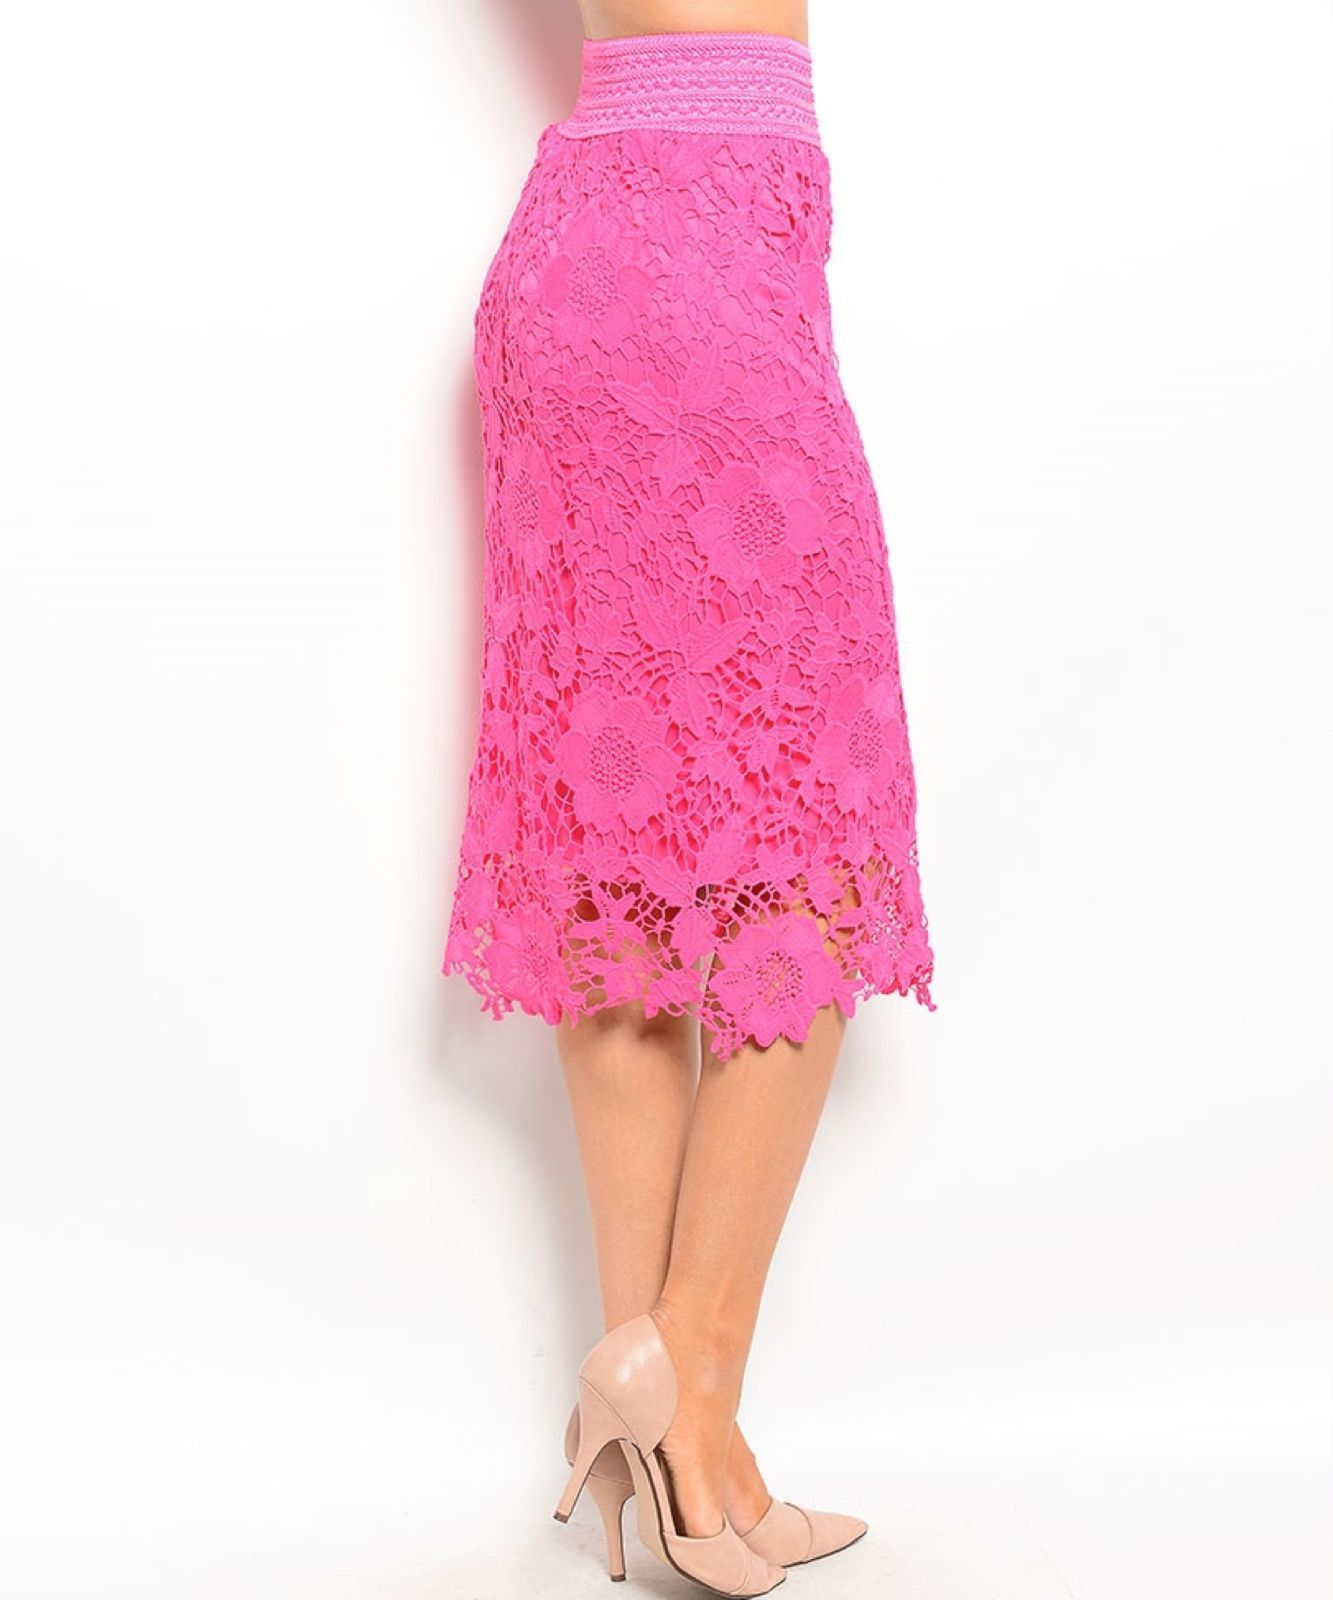 Image 2 of Chic Crochet Lace Lined Jr Skirt, Cocktail Club Wedding Party, Fuchsia or Aqua -